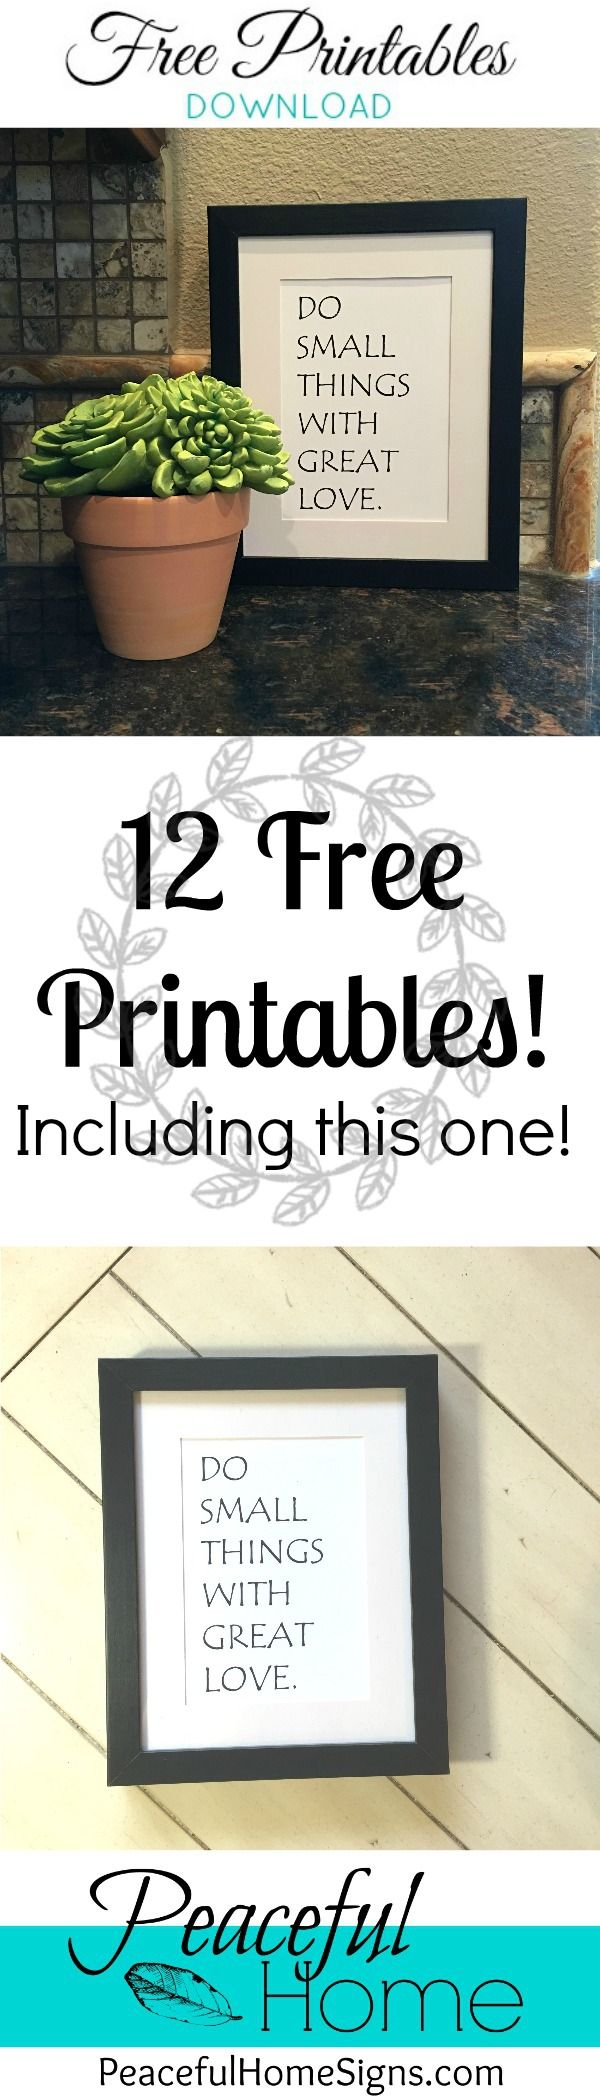 """12 Free Printables to spruce up your decor! Get the download! """"Do small things with great love."""" #printables #download #free #homedecor #giveaway"""